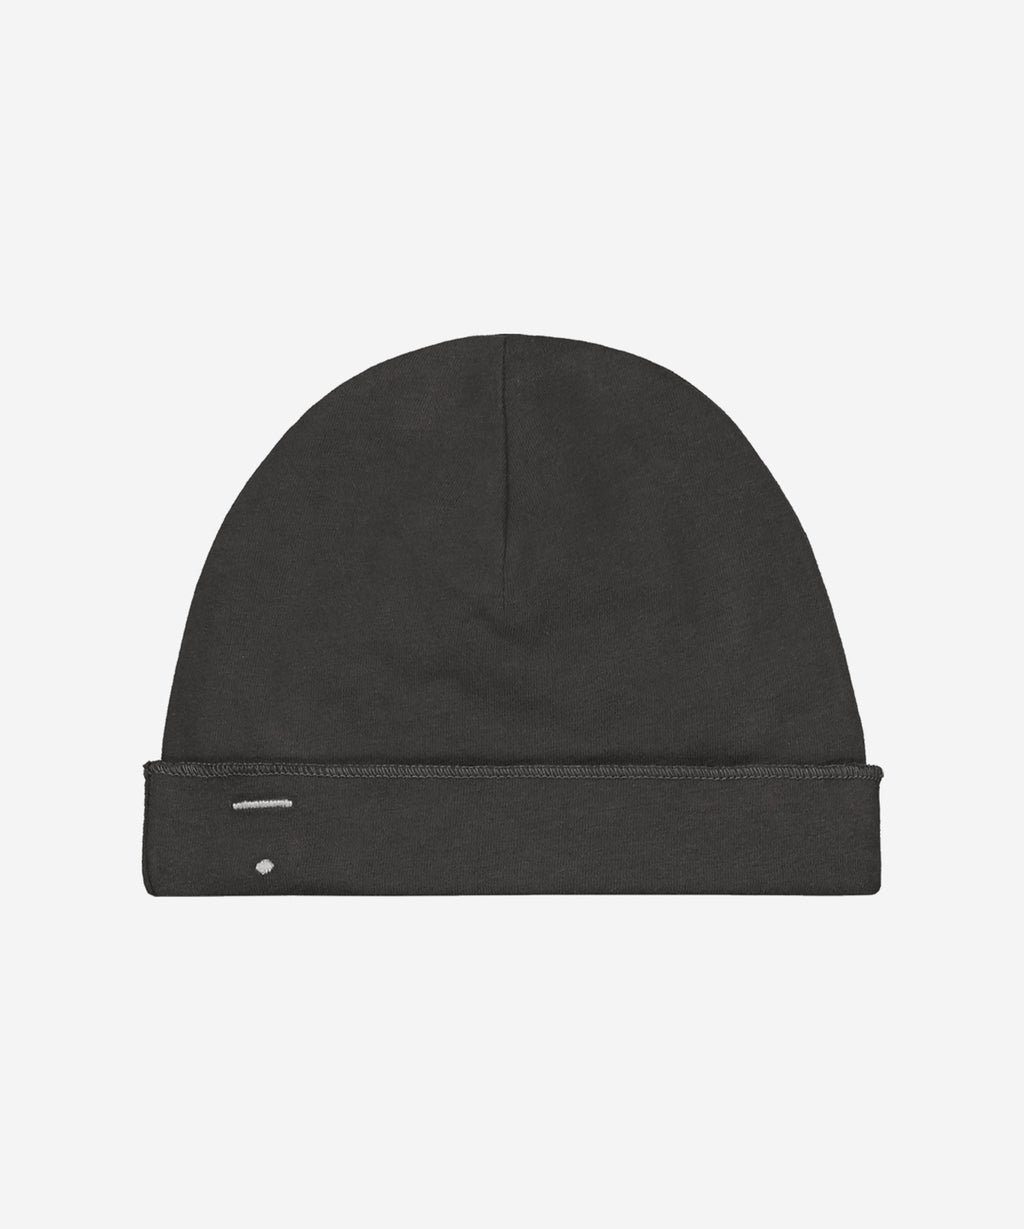 GRAY LABEL Organic Baby Beanie Miniature - Nearly Black